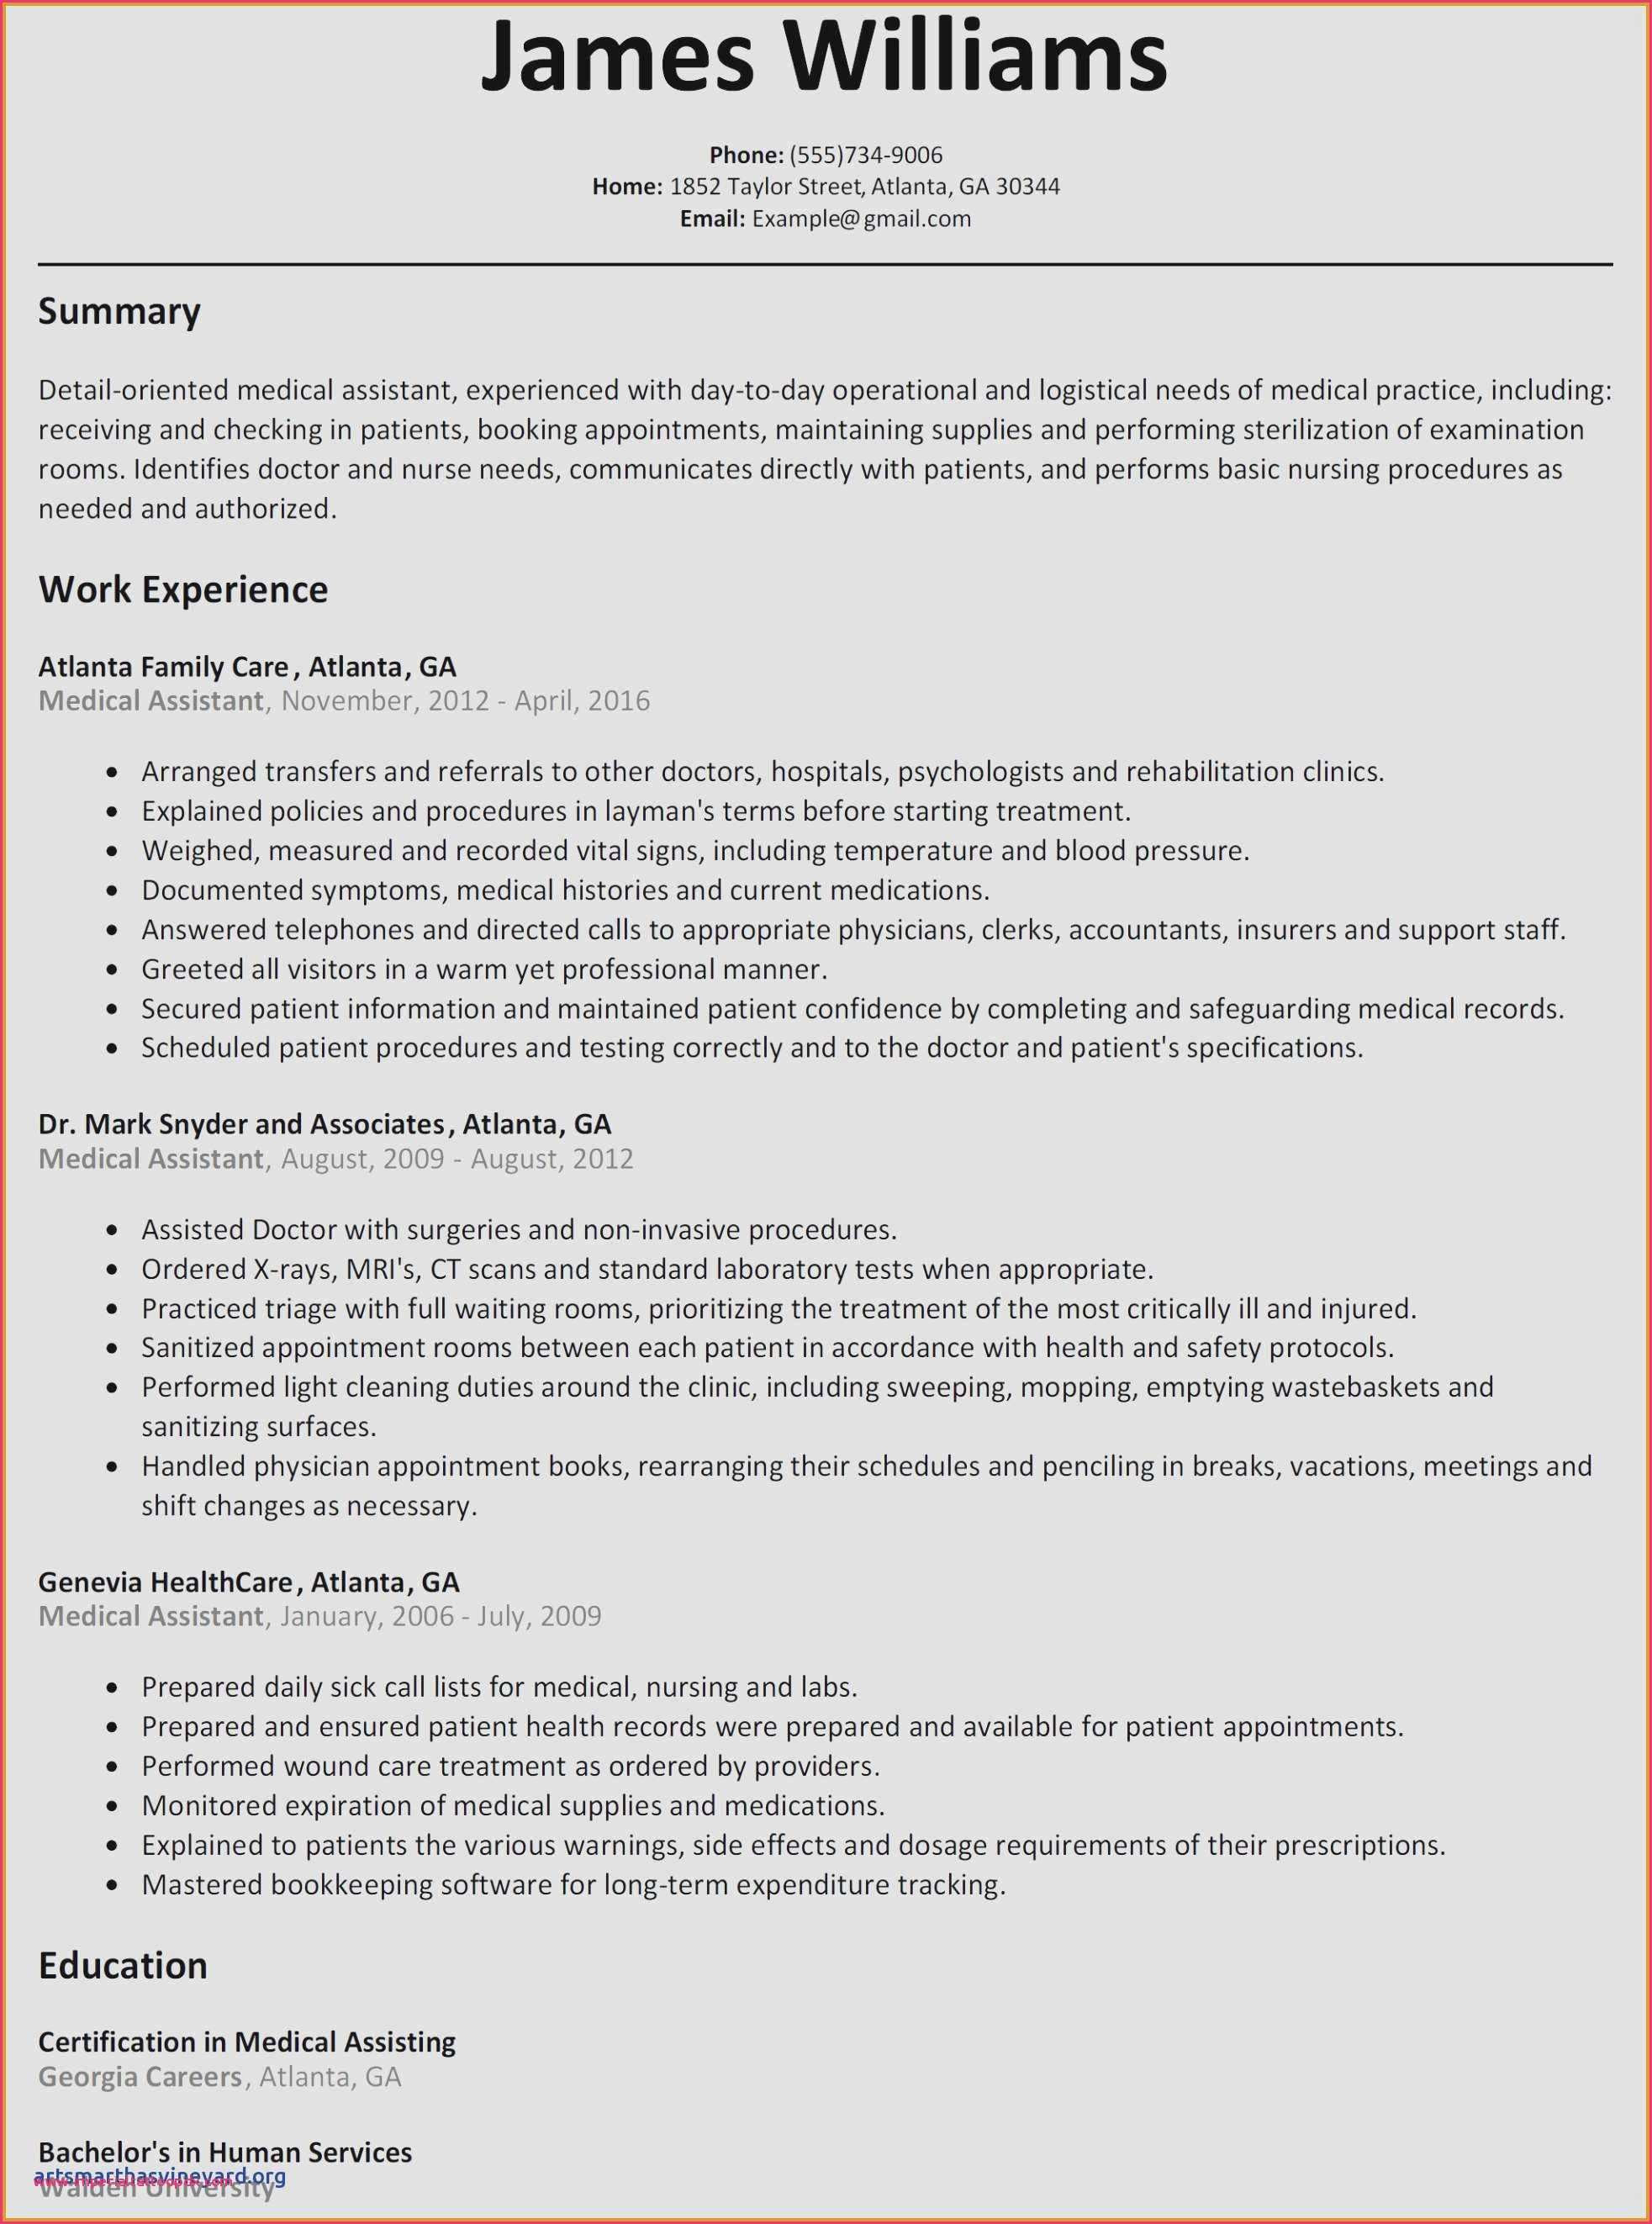 Nursing Resume Template Word - Nursing Award Certificate Templates top Resume Template Samples Word